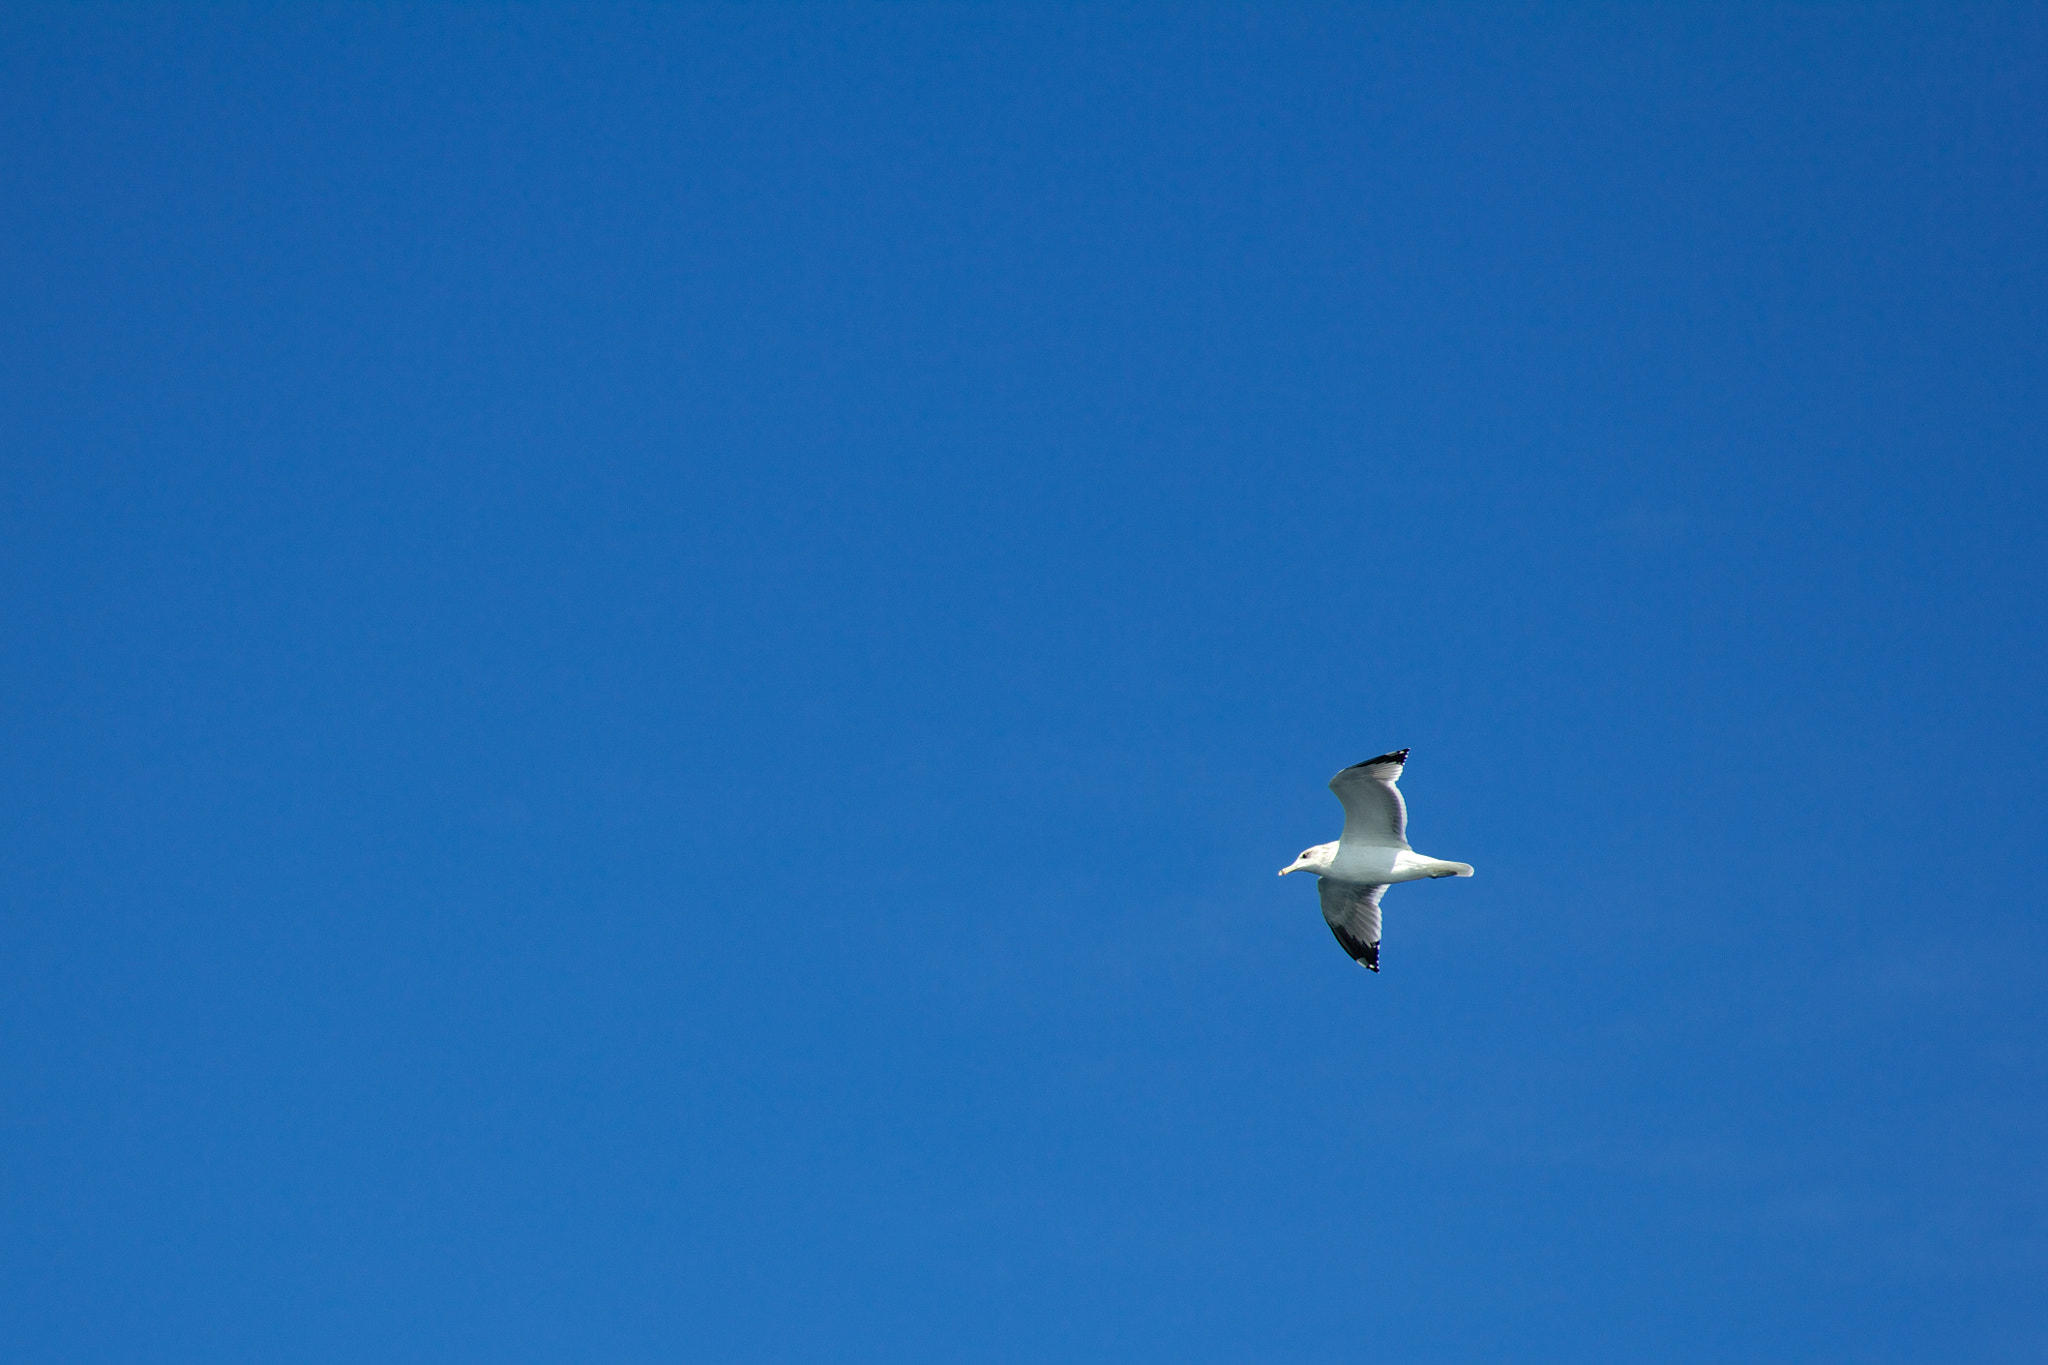 Photograph Seagull flying by Tomas Lampo on 500px